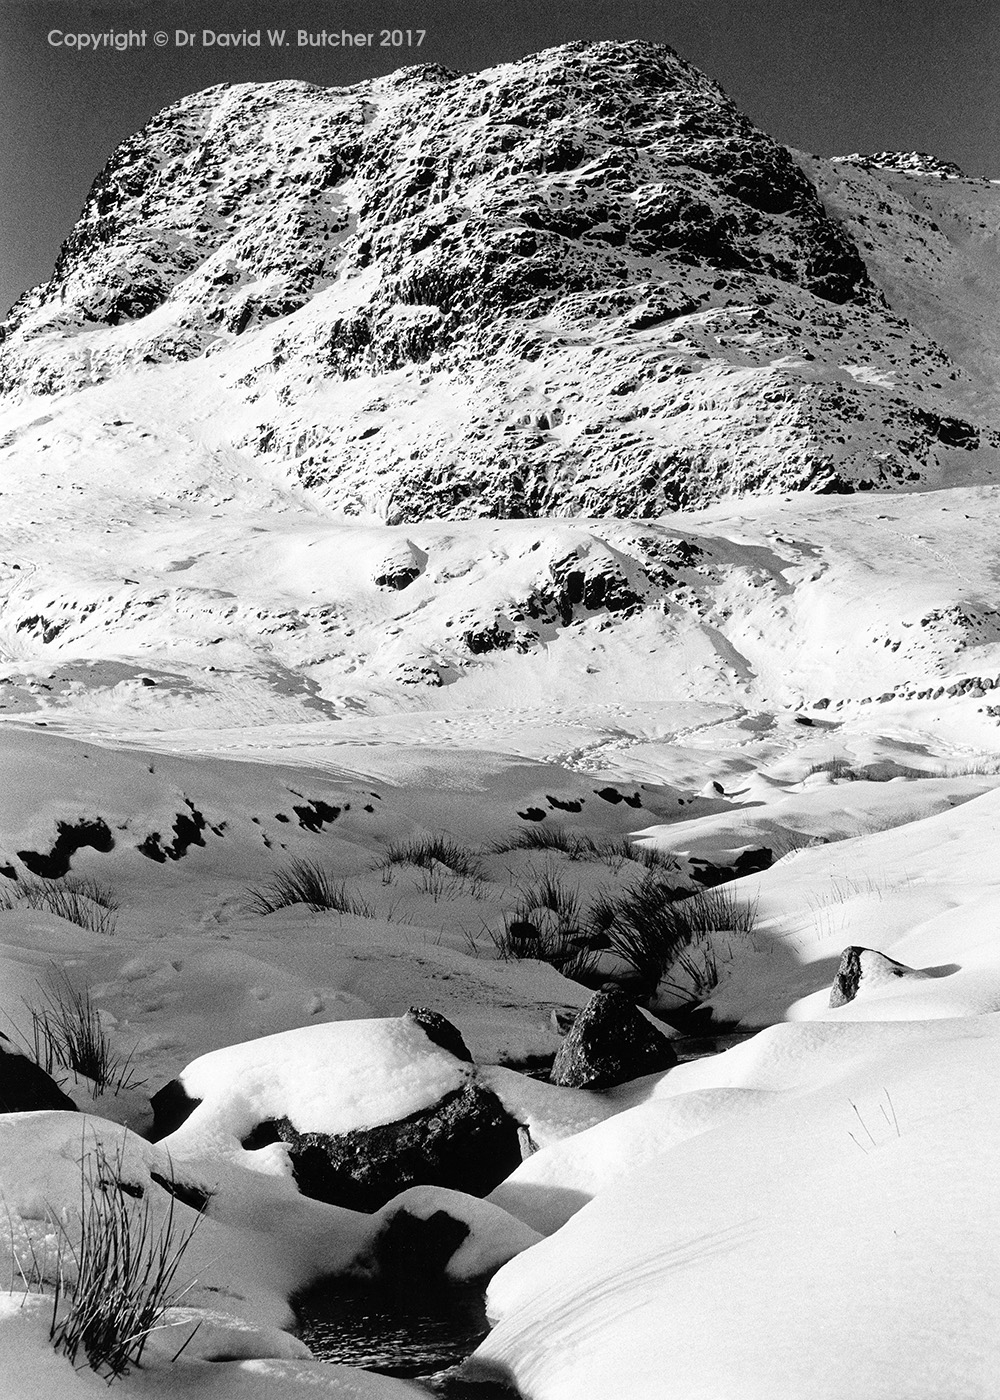 Harrison Stickle in Winter, Langdale, Lake District